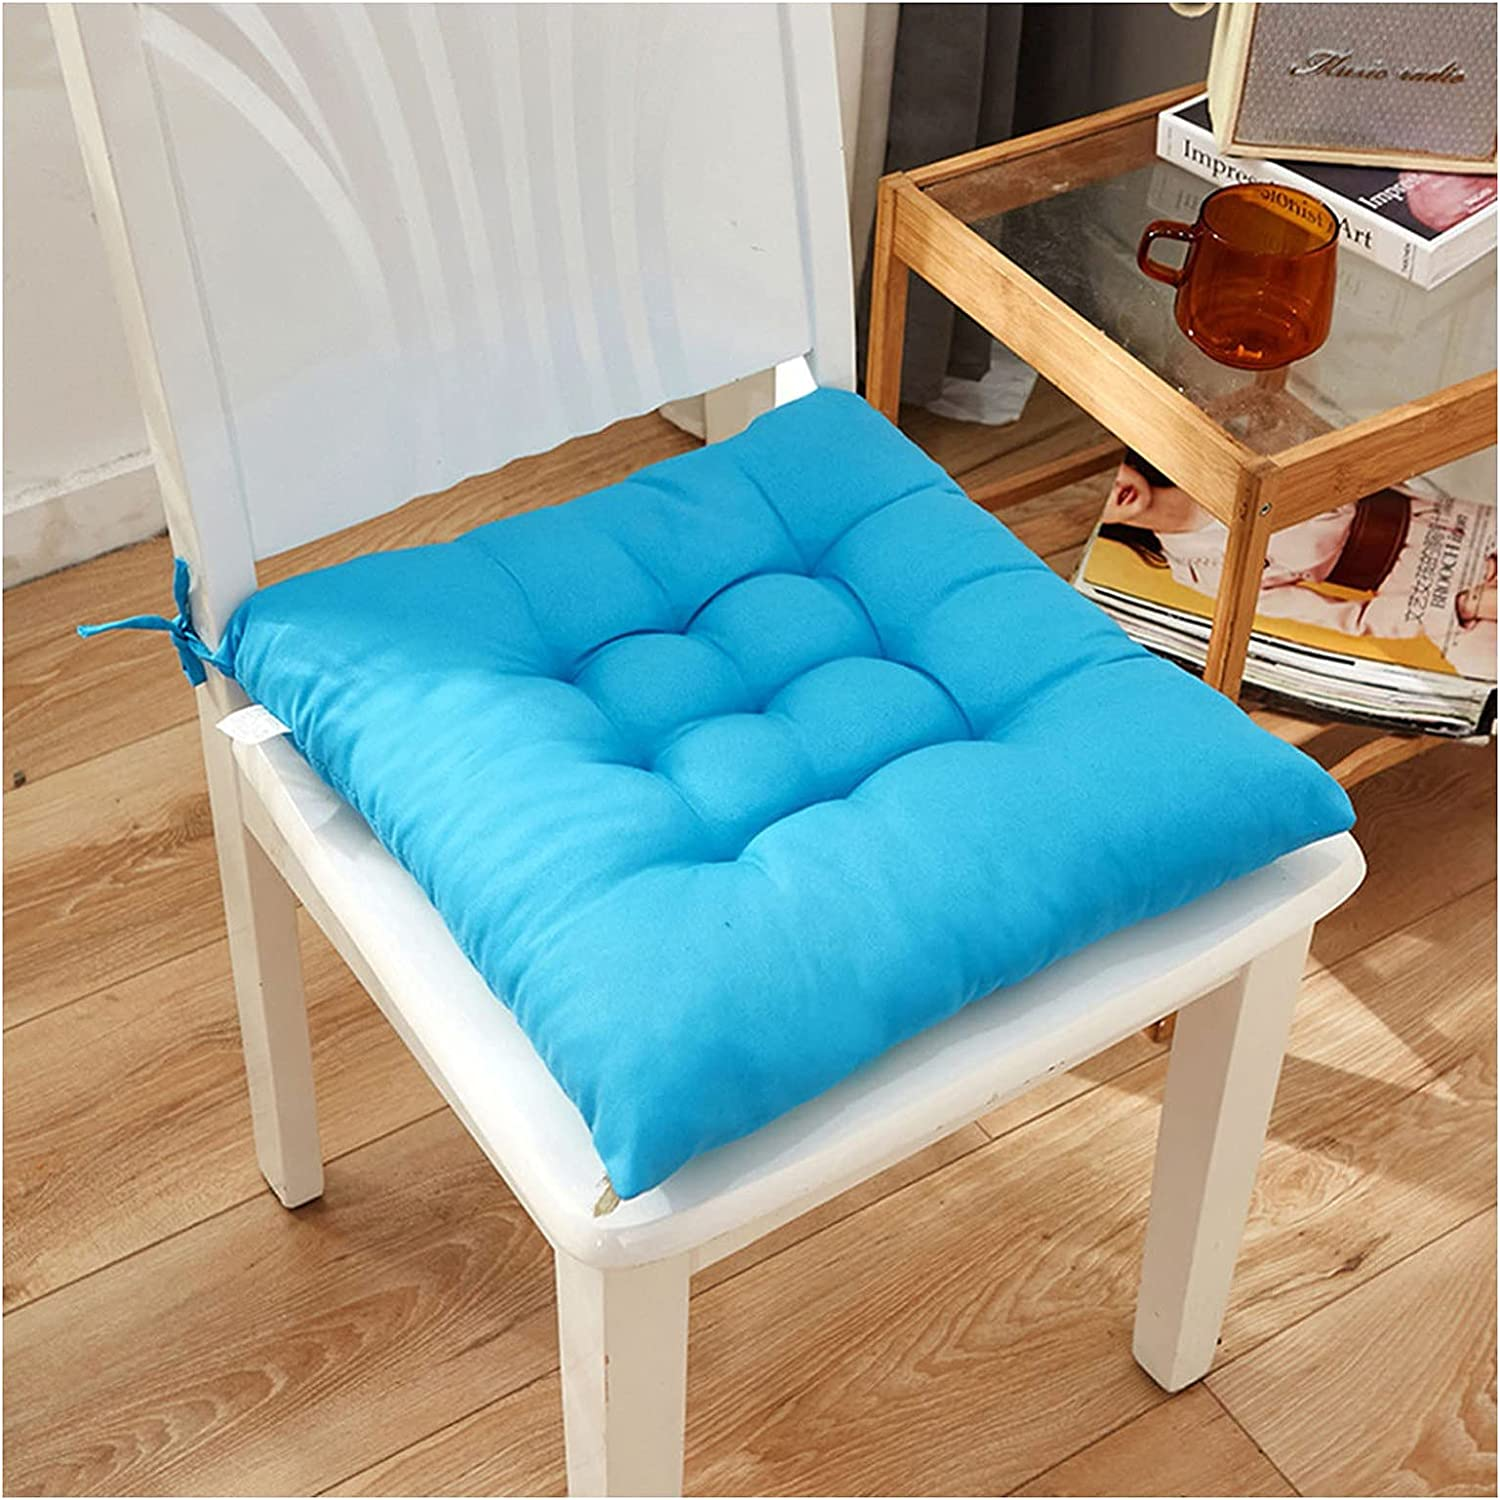 JYHF Square Chair Jacksonville Mall Soft Pad Ranking TOP10 Thicker Patio Seat Dining Cushion for